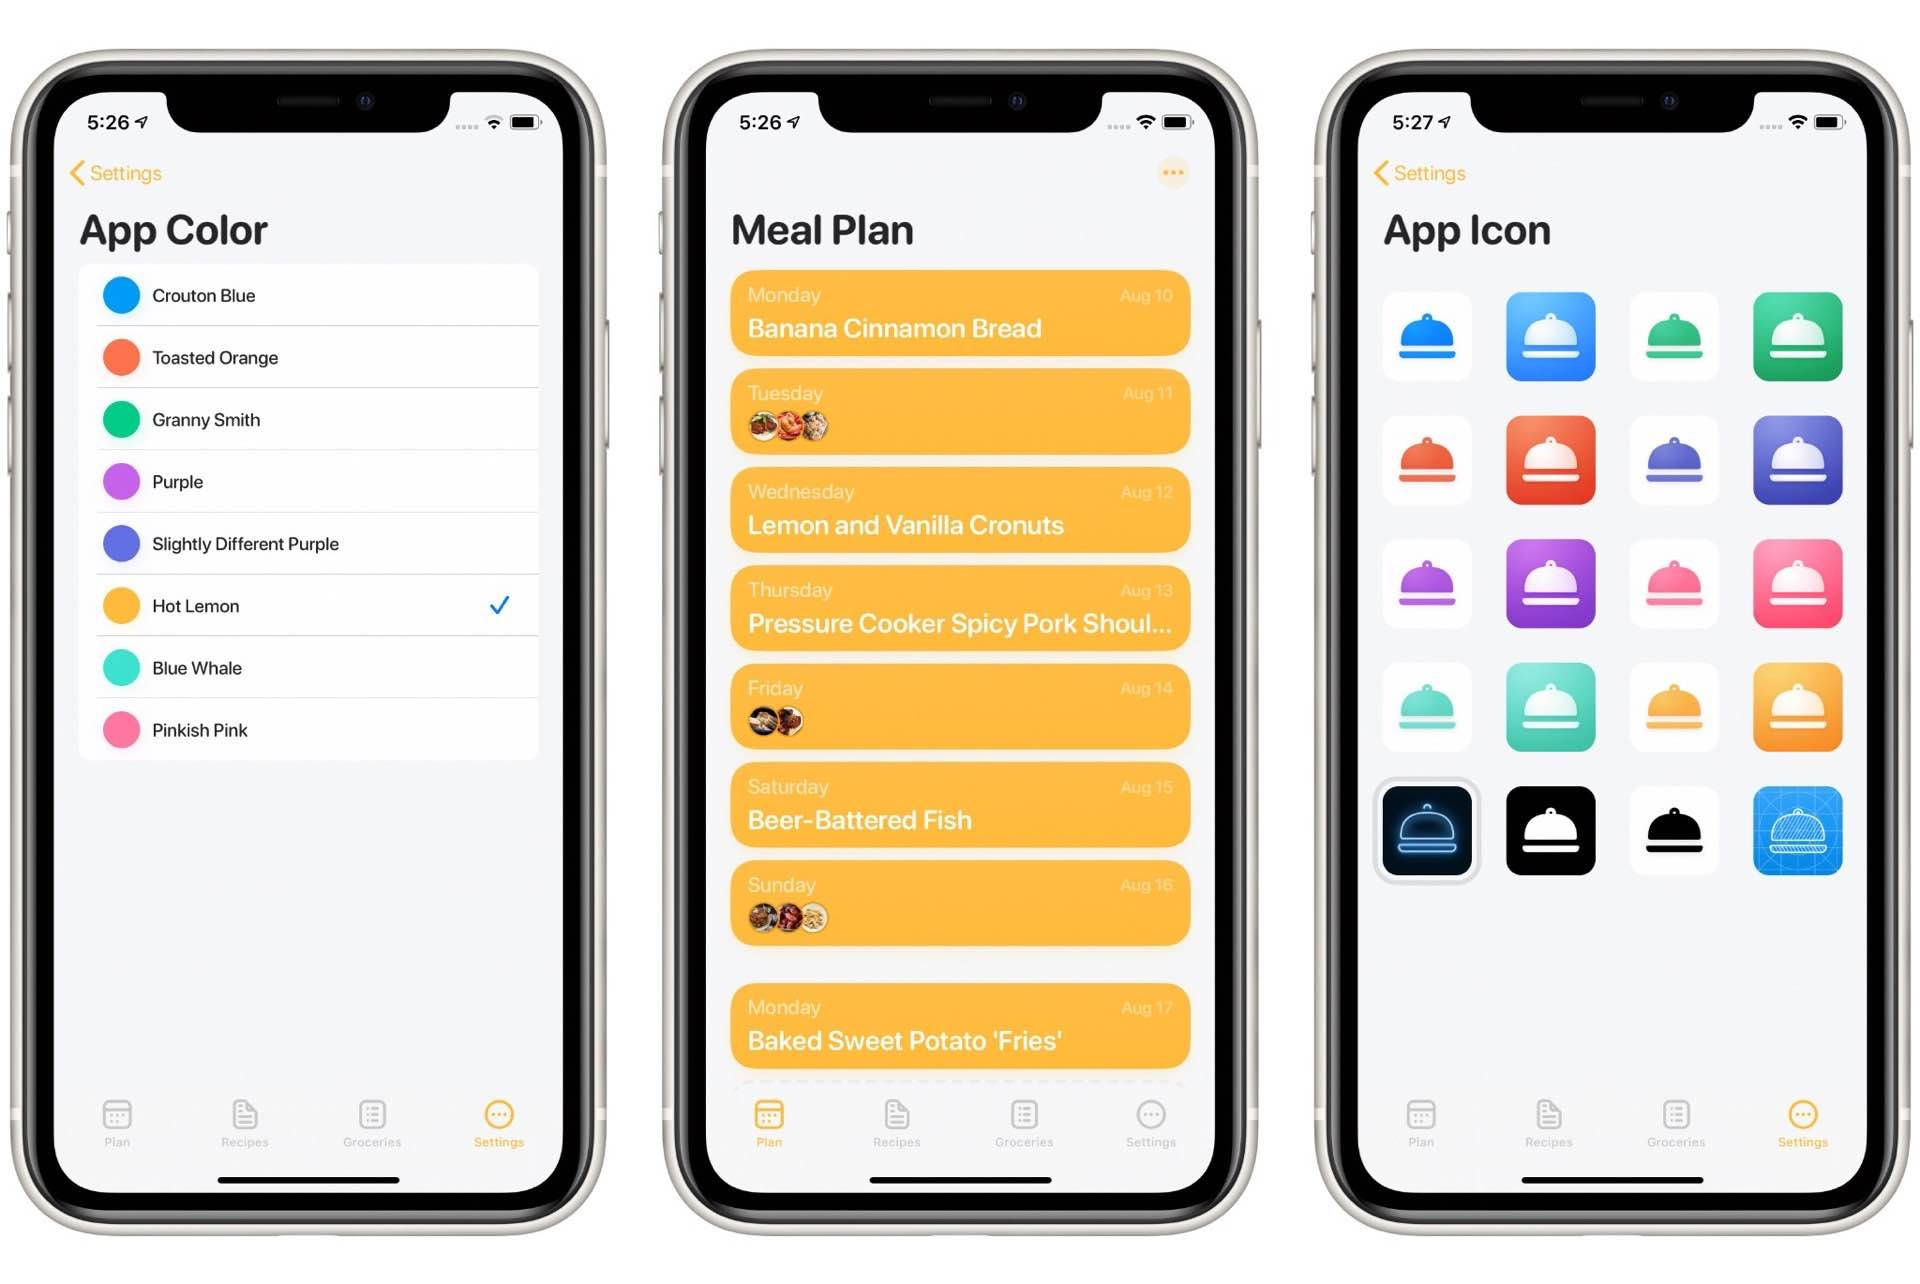 crouton-recipe-and-meal-planner-app-themes-and-icons